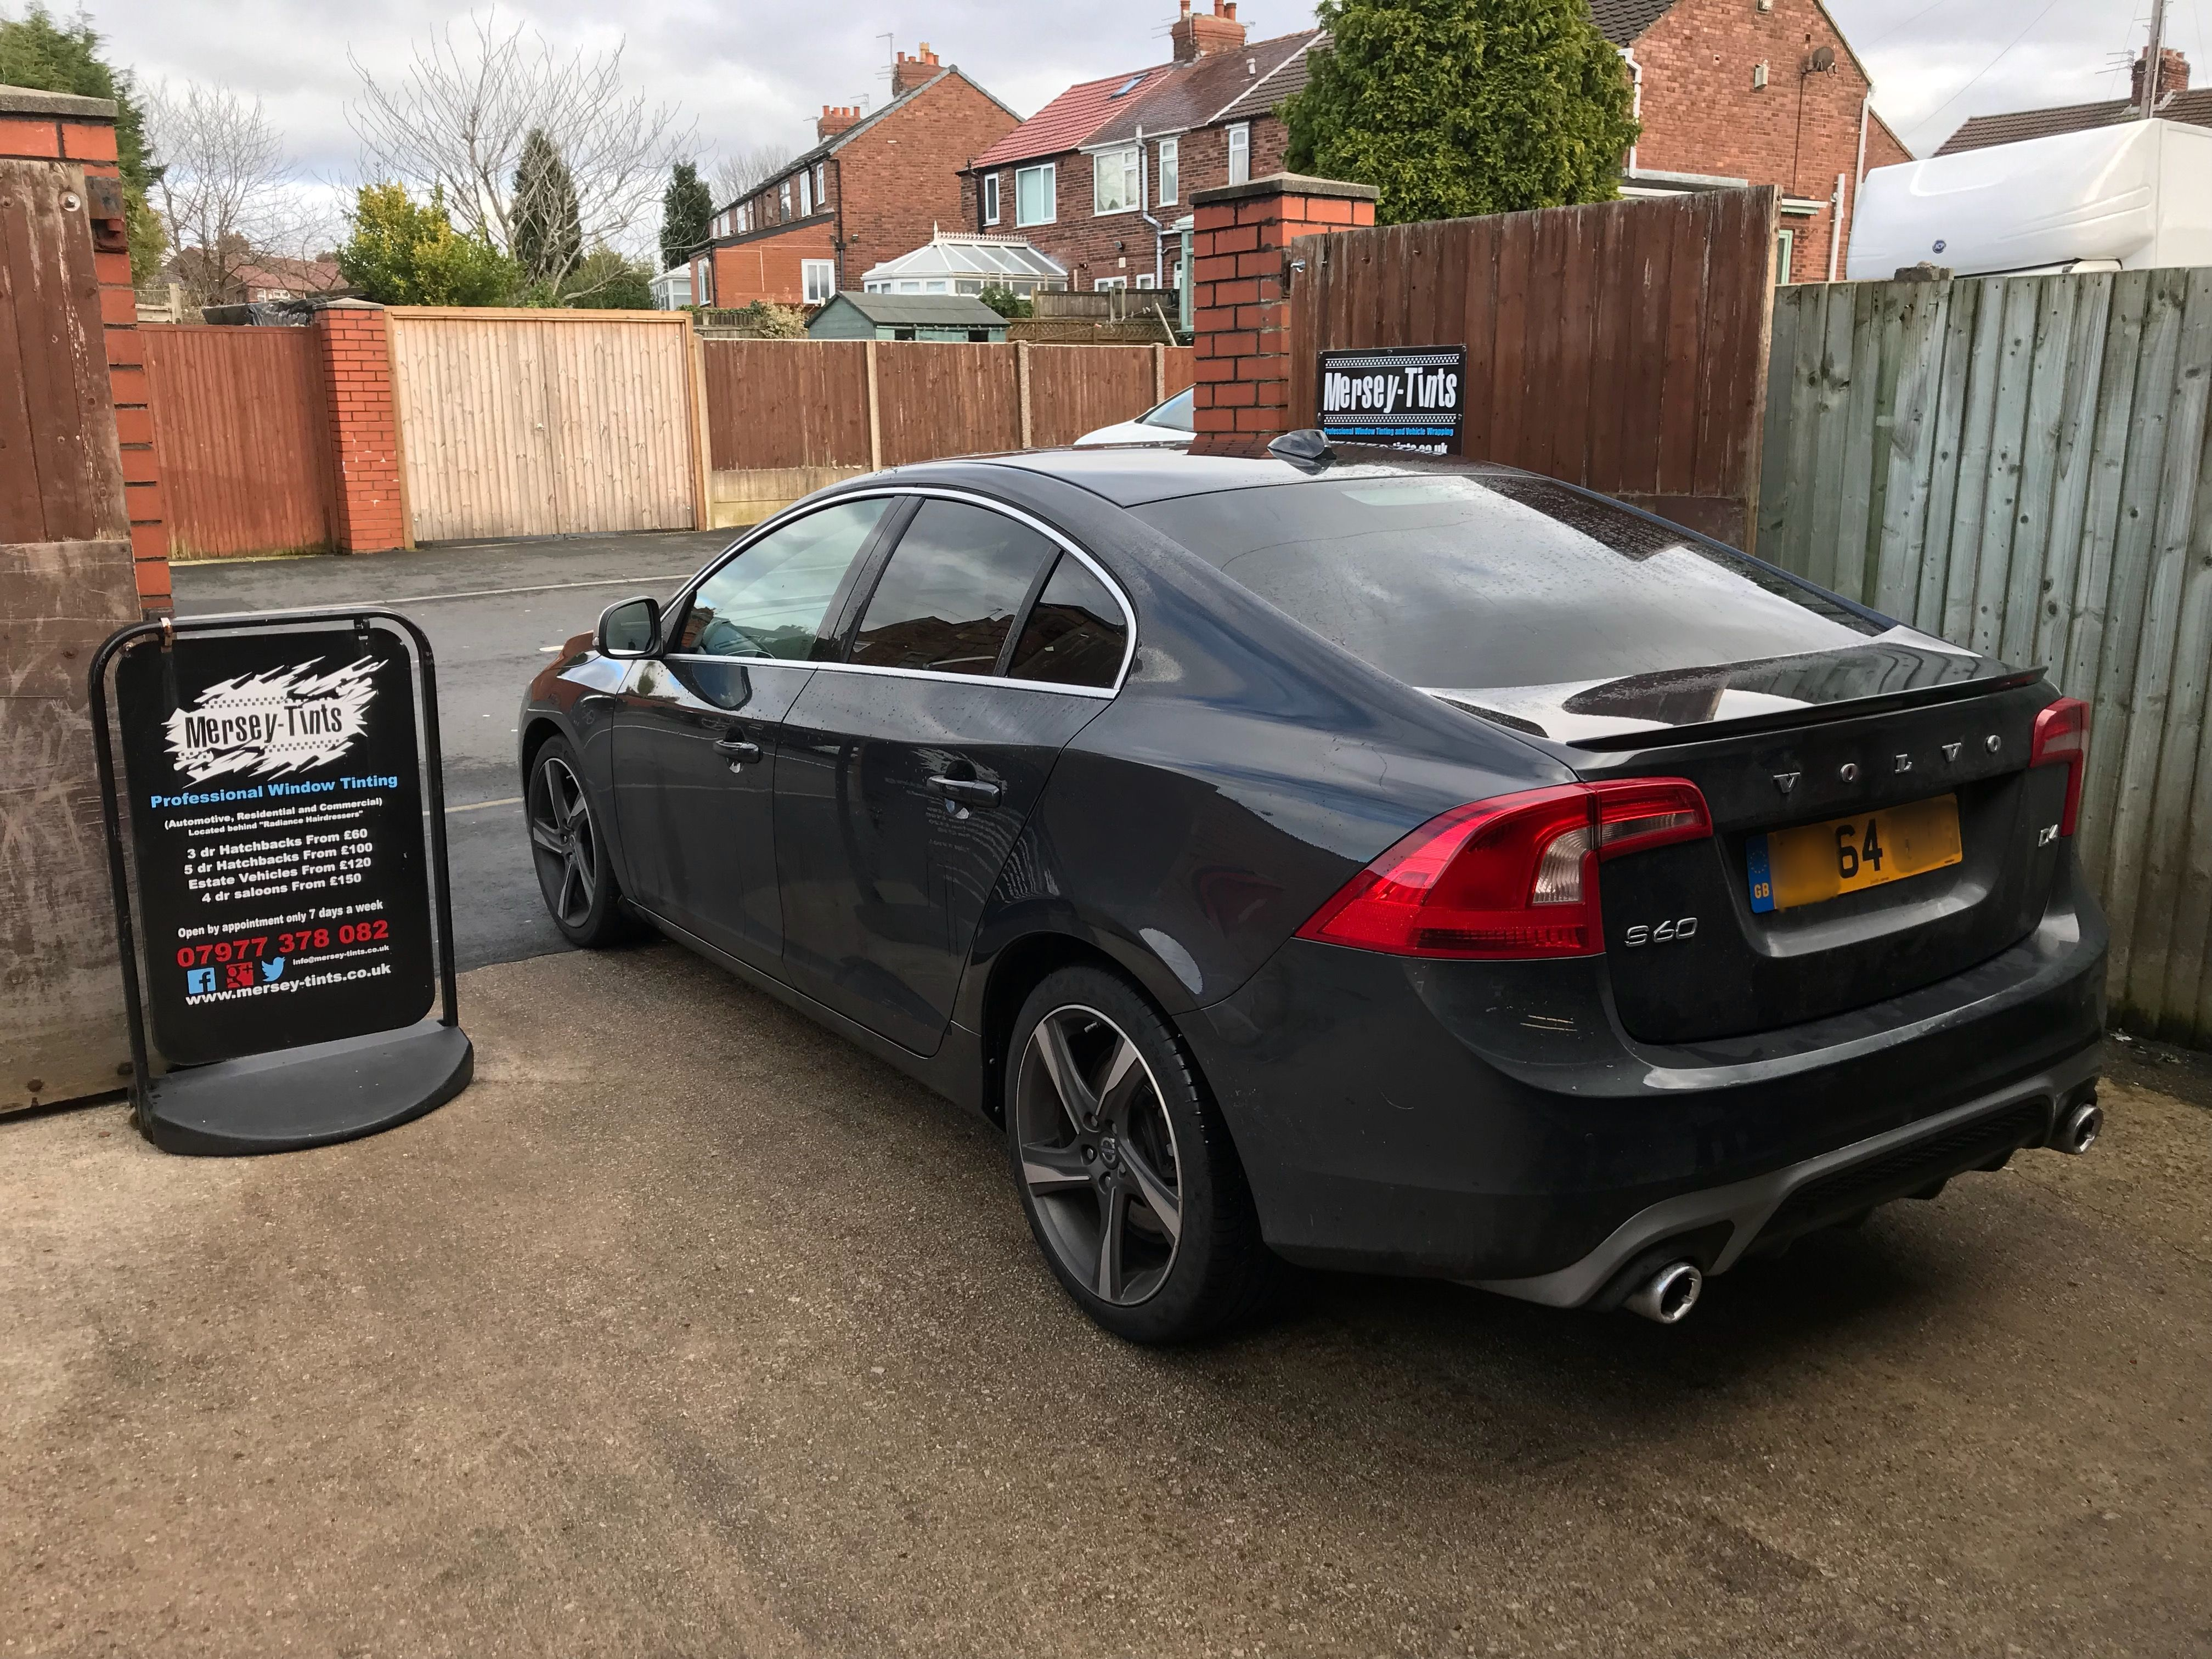 2014 Volvo S60 R Design In This Morning For 18 Carbon Tints To The 2012 Ford Focus Tinted Windows Rears